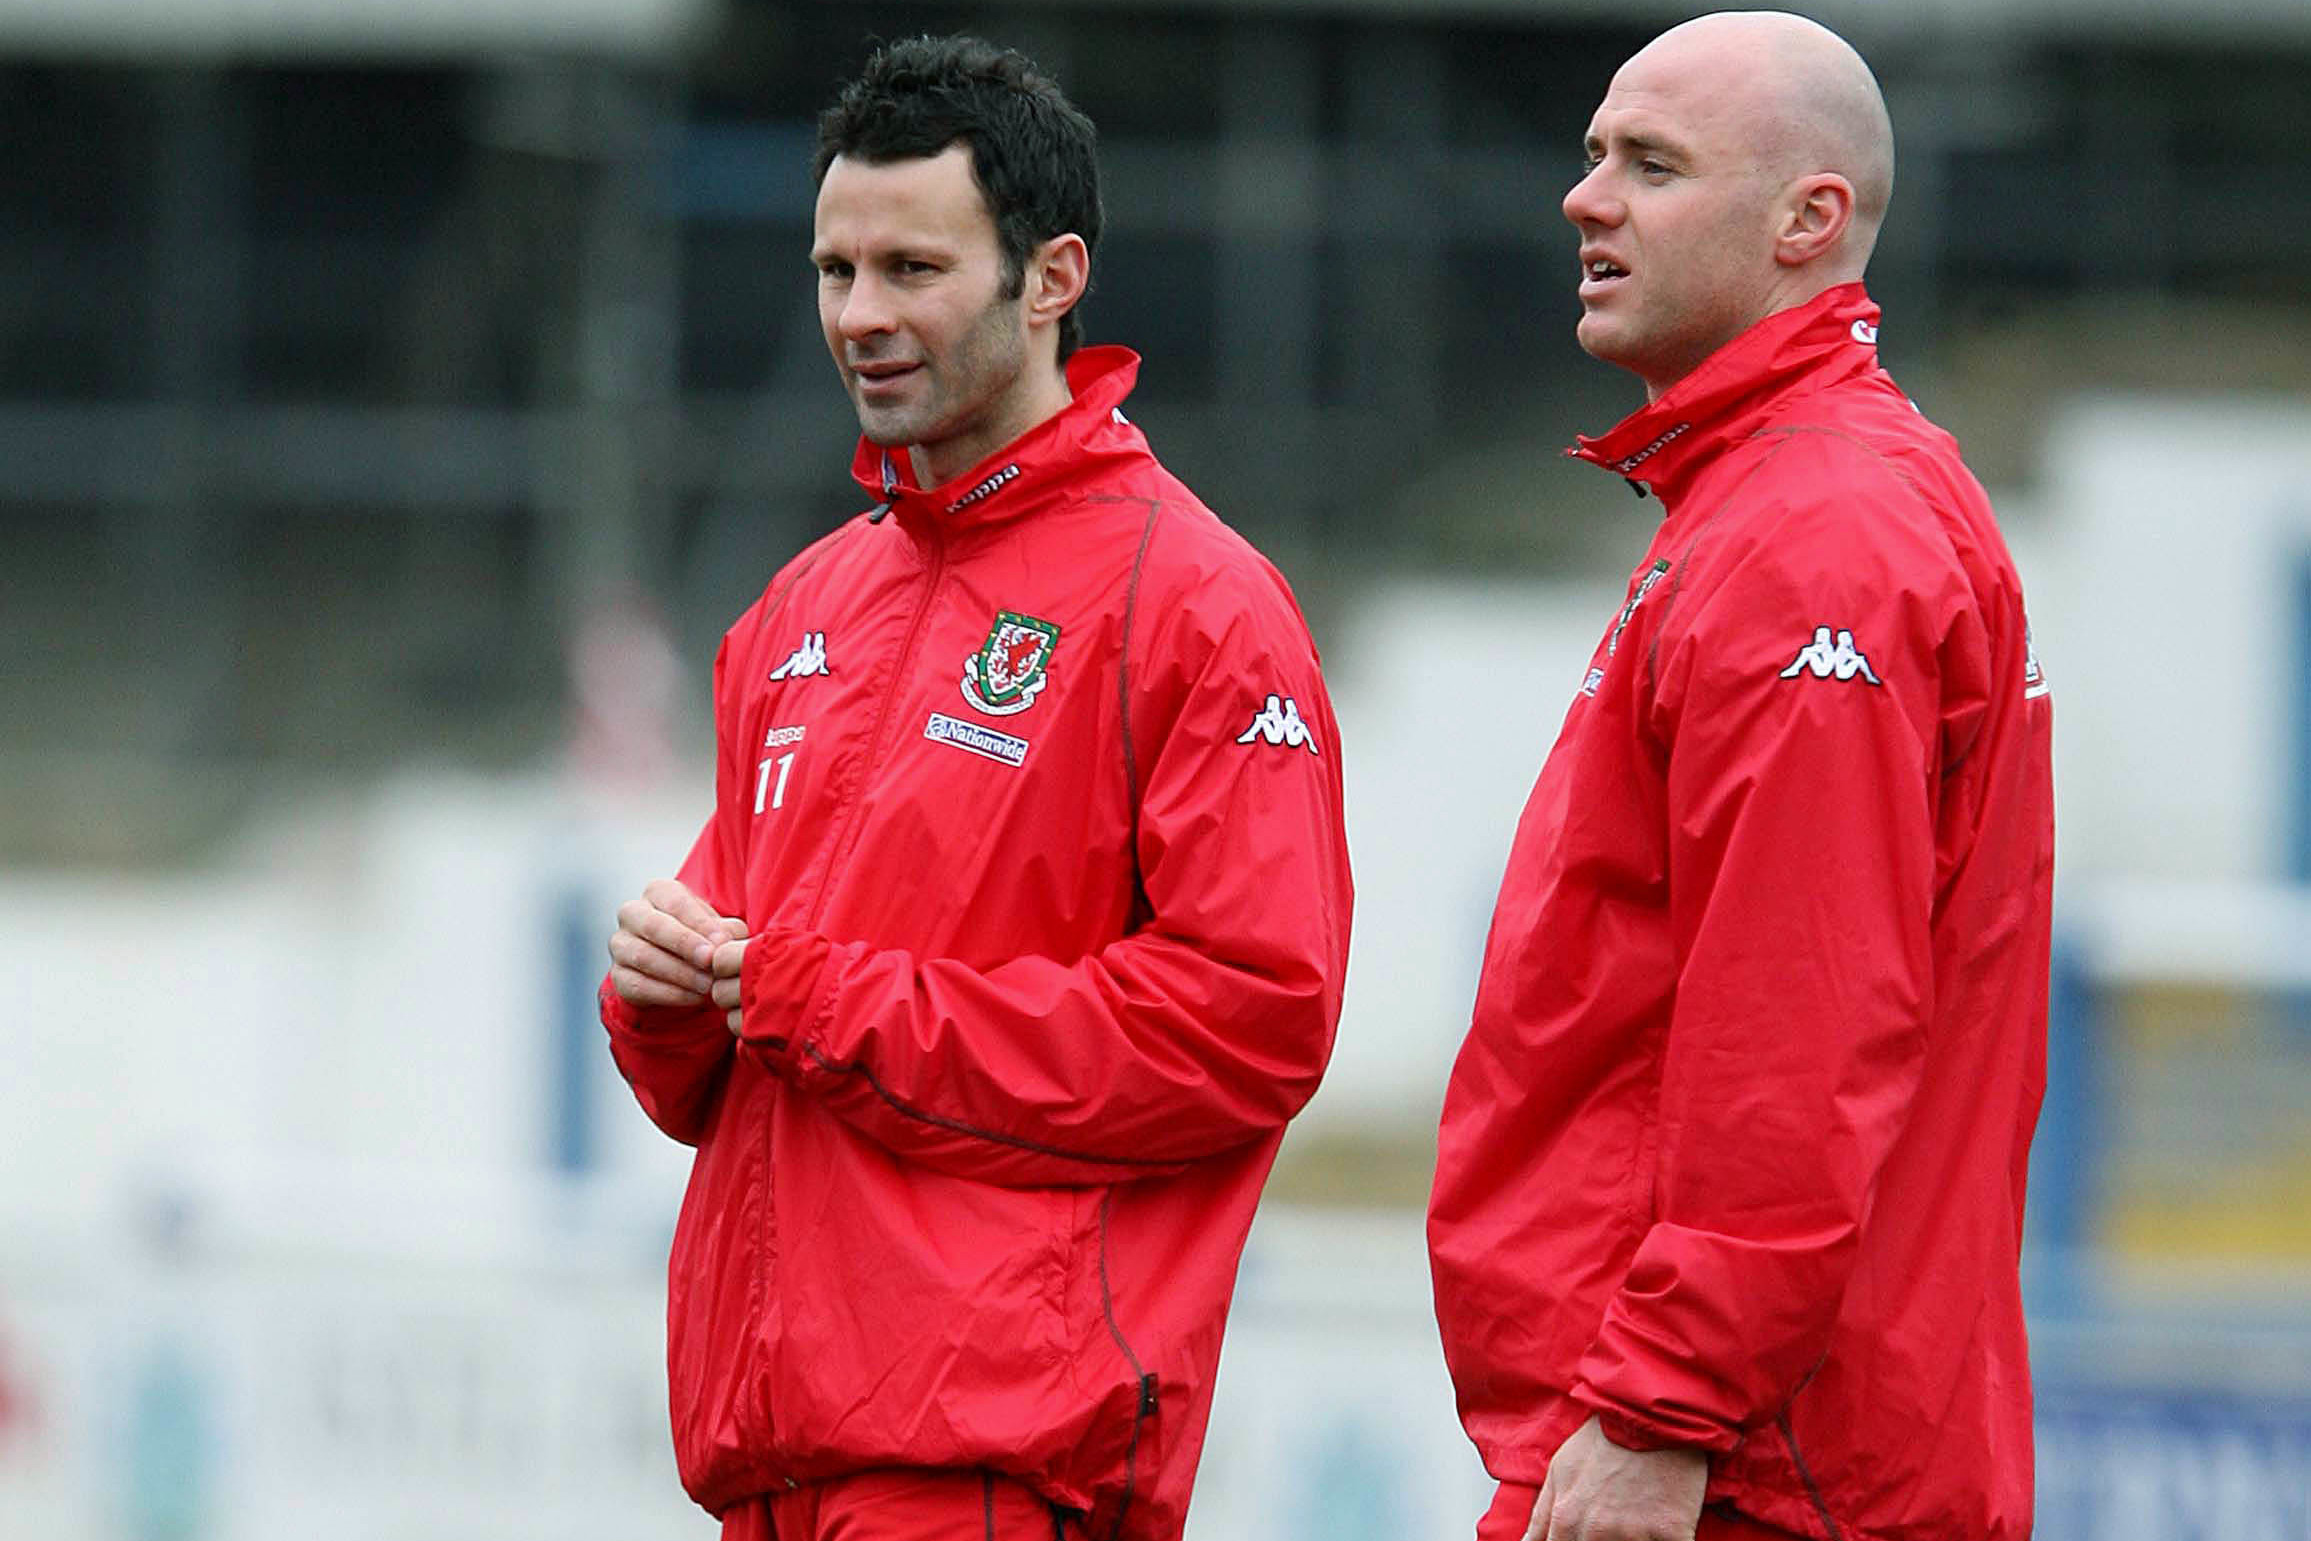 Former Watford captain Robert Page promoted to senior Wales coaching role